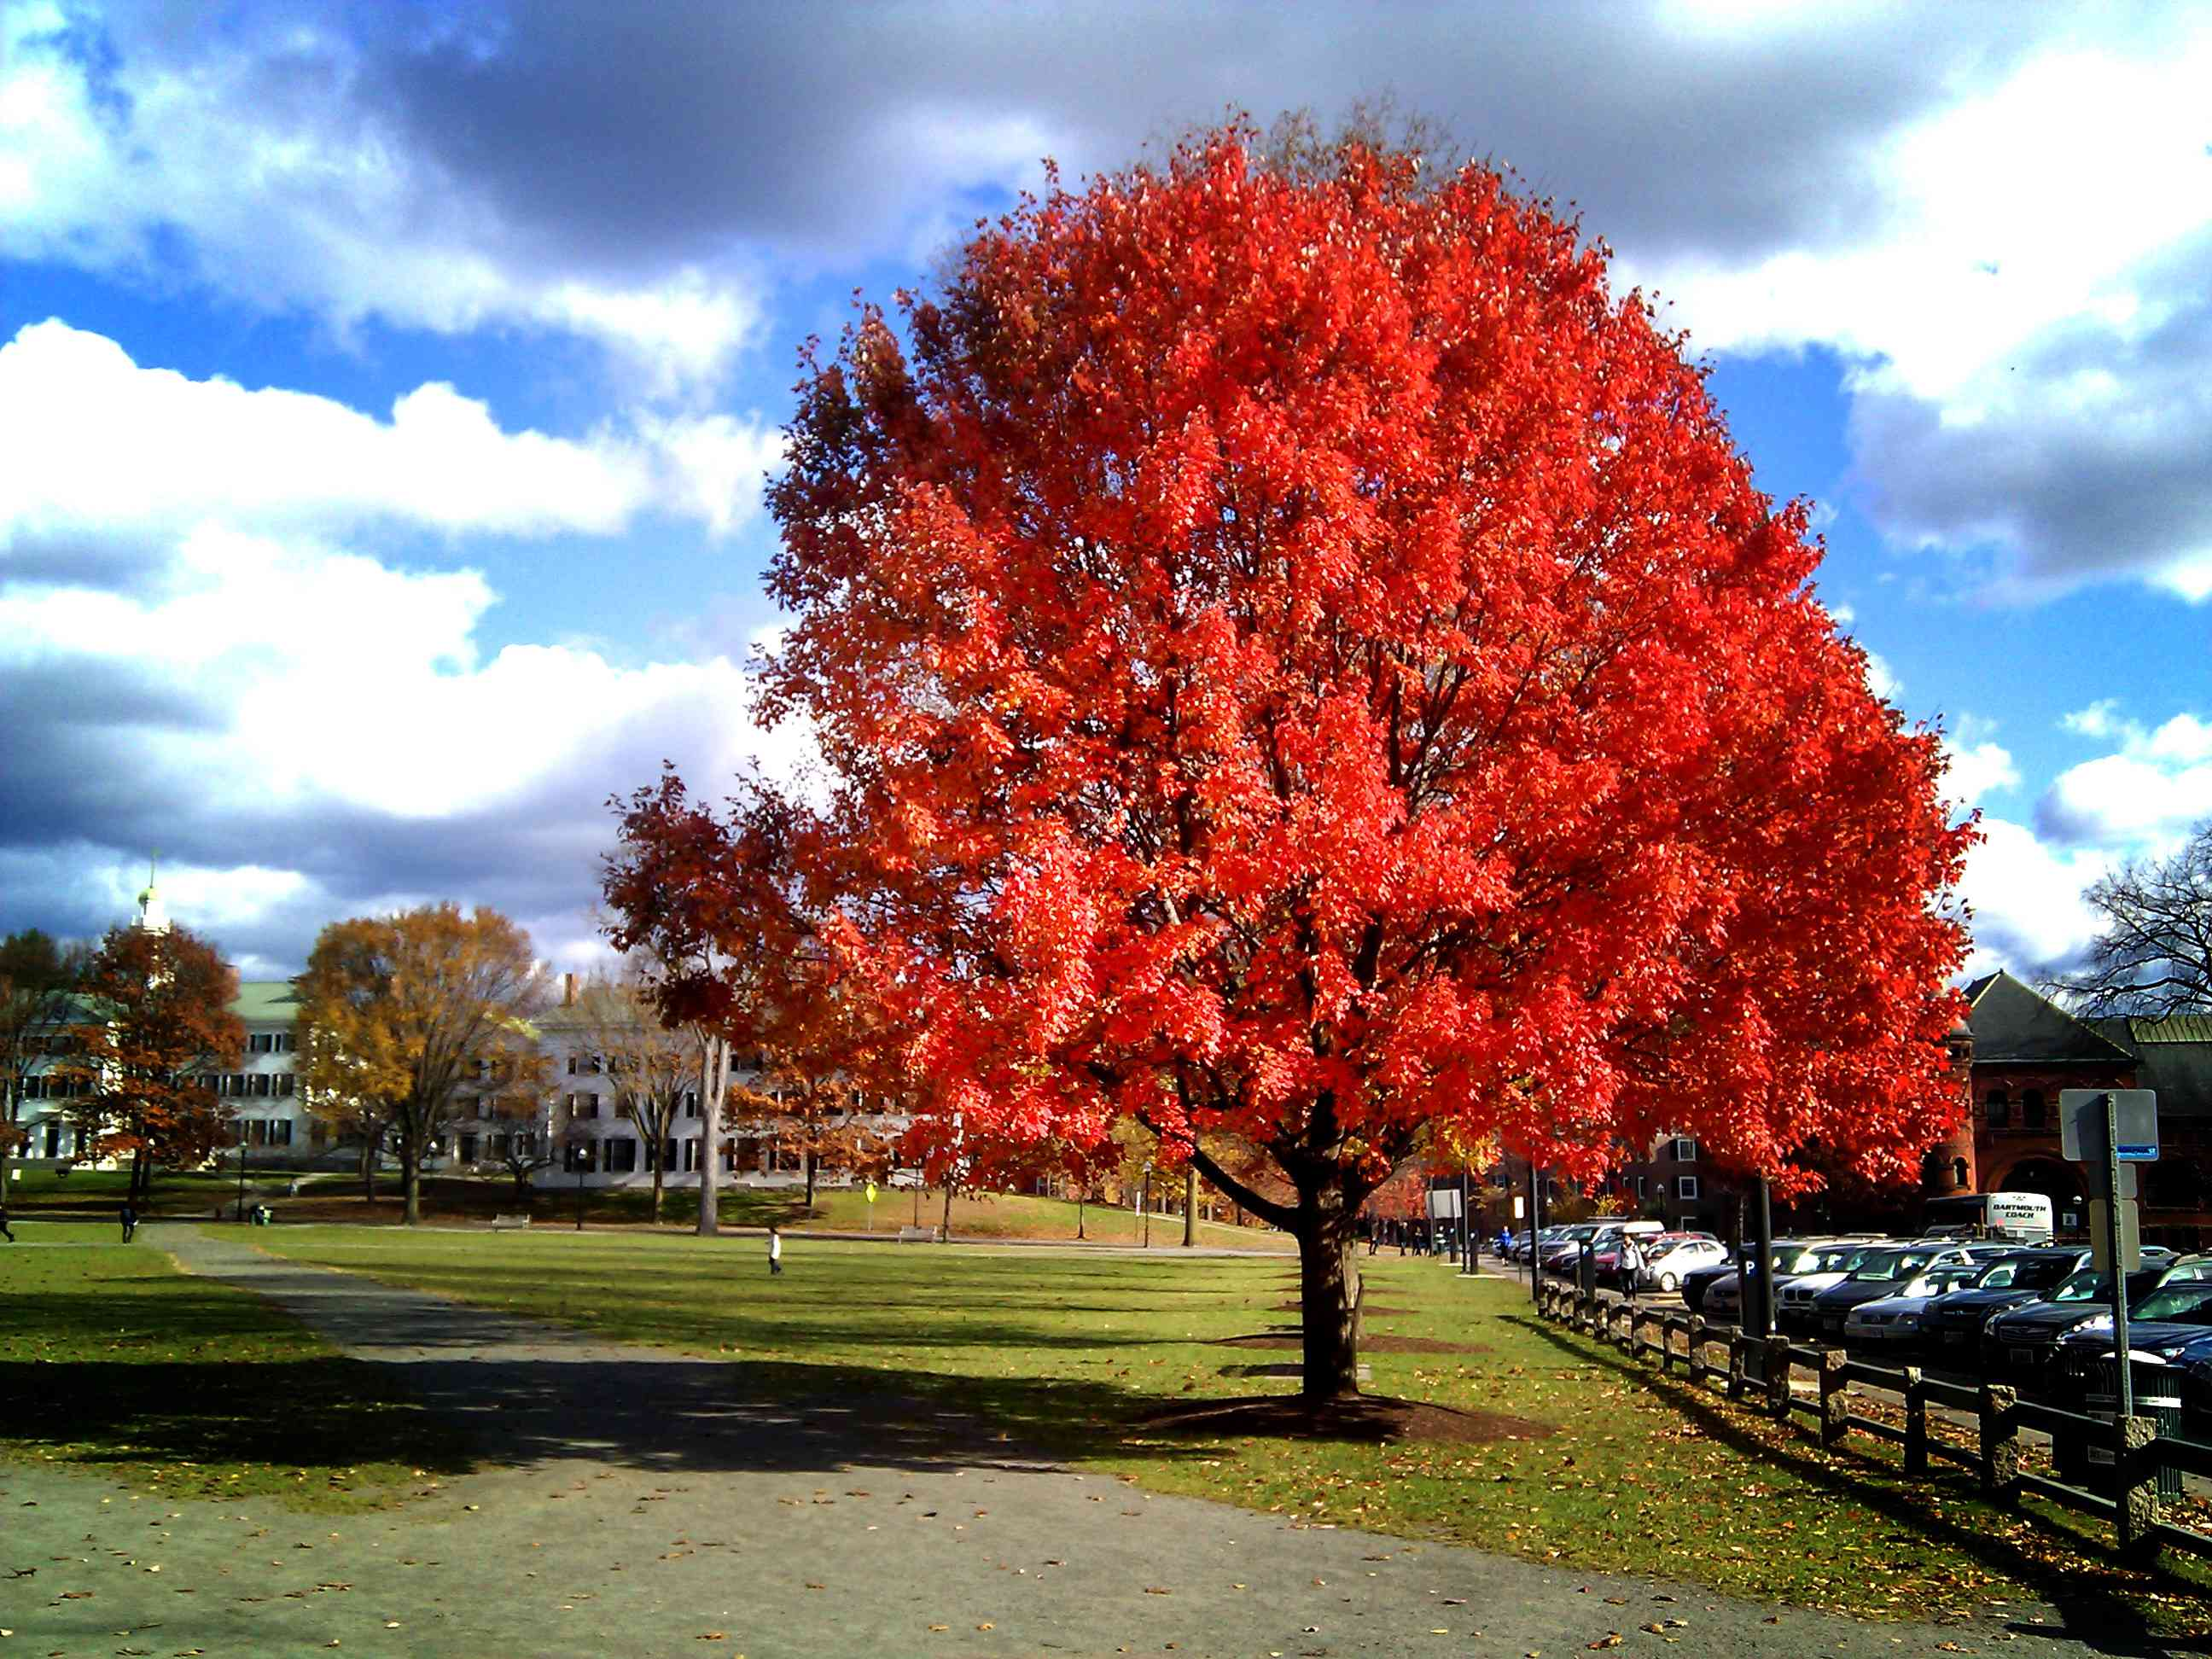 Red maple tree in full color in a grass field adjacent to a wood fence next to a parking lot